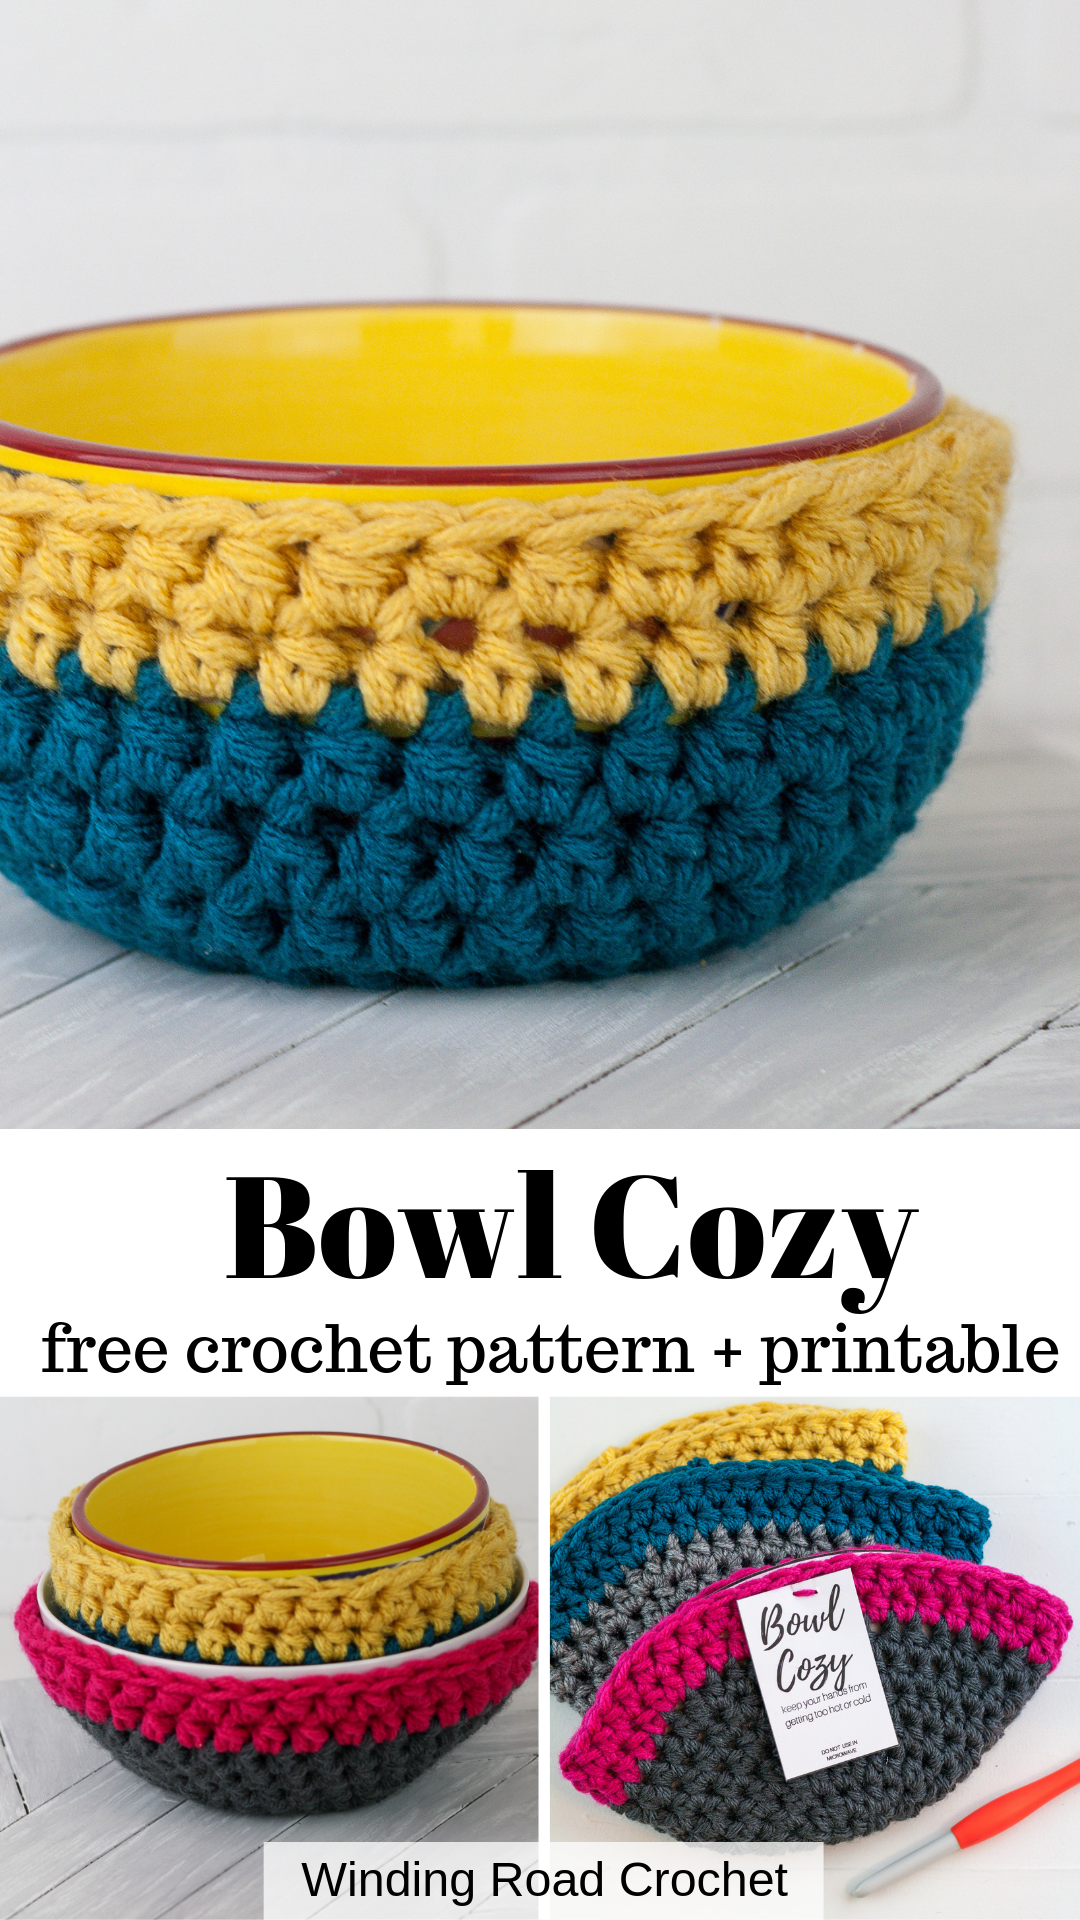 Quick Crochet Bowl Cozy - Winding Road Crochet #crochetbowl